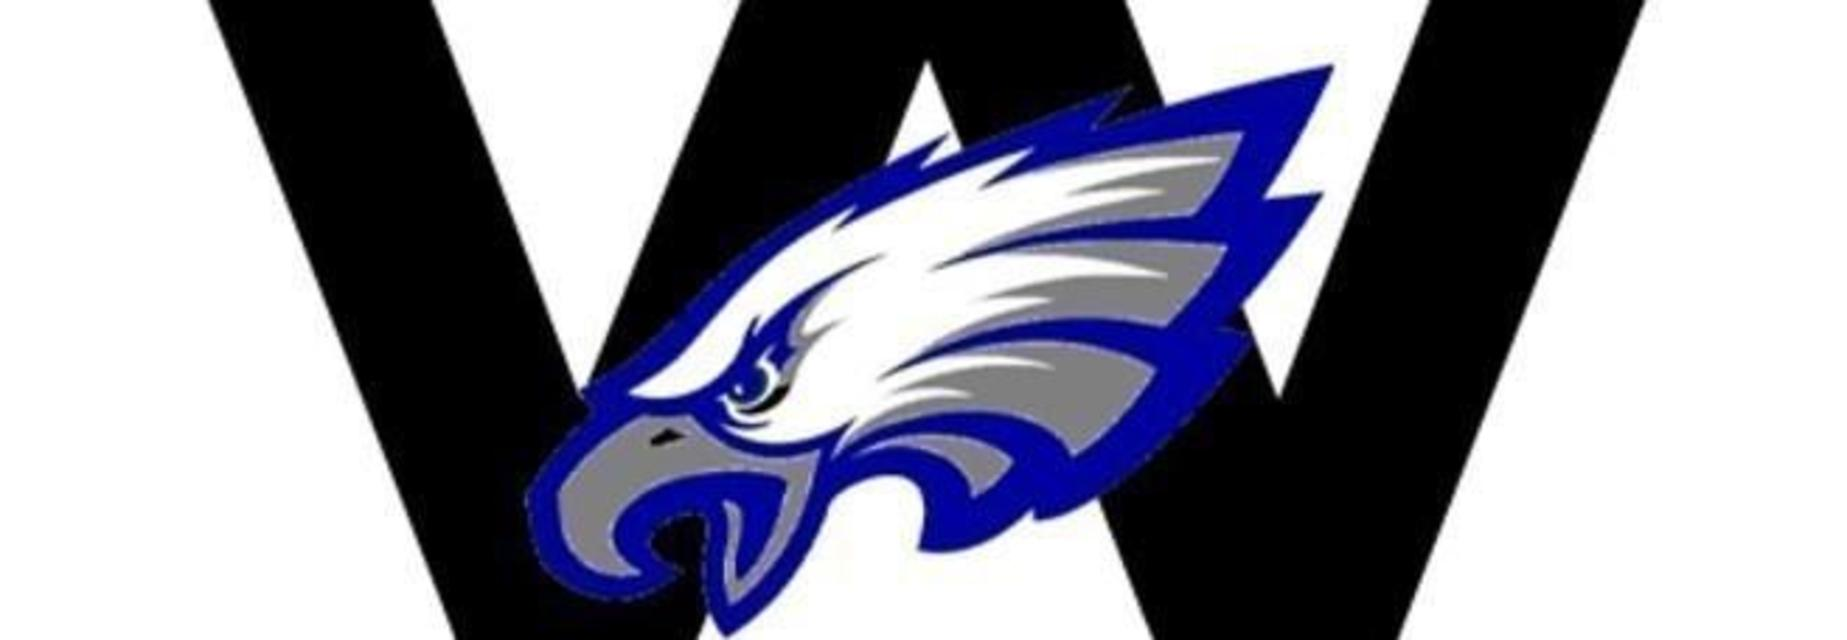 Waitz Eagles logo